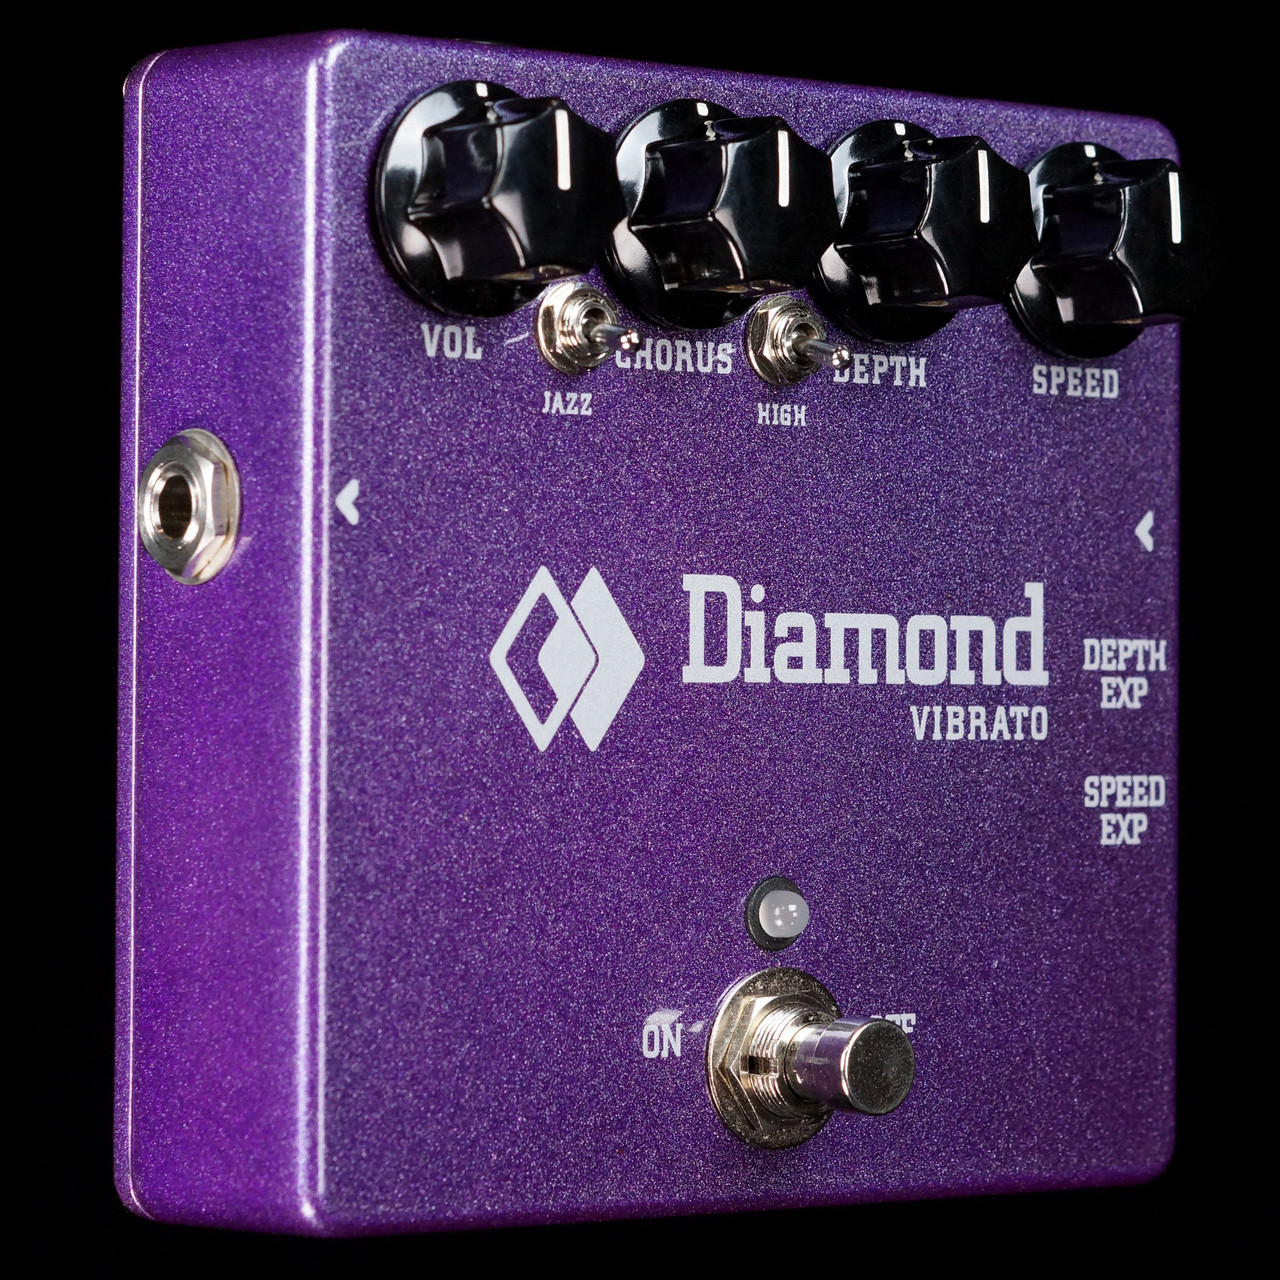 Diamond Analog Vibrato VIB1 2